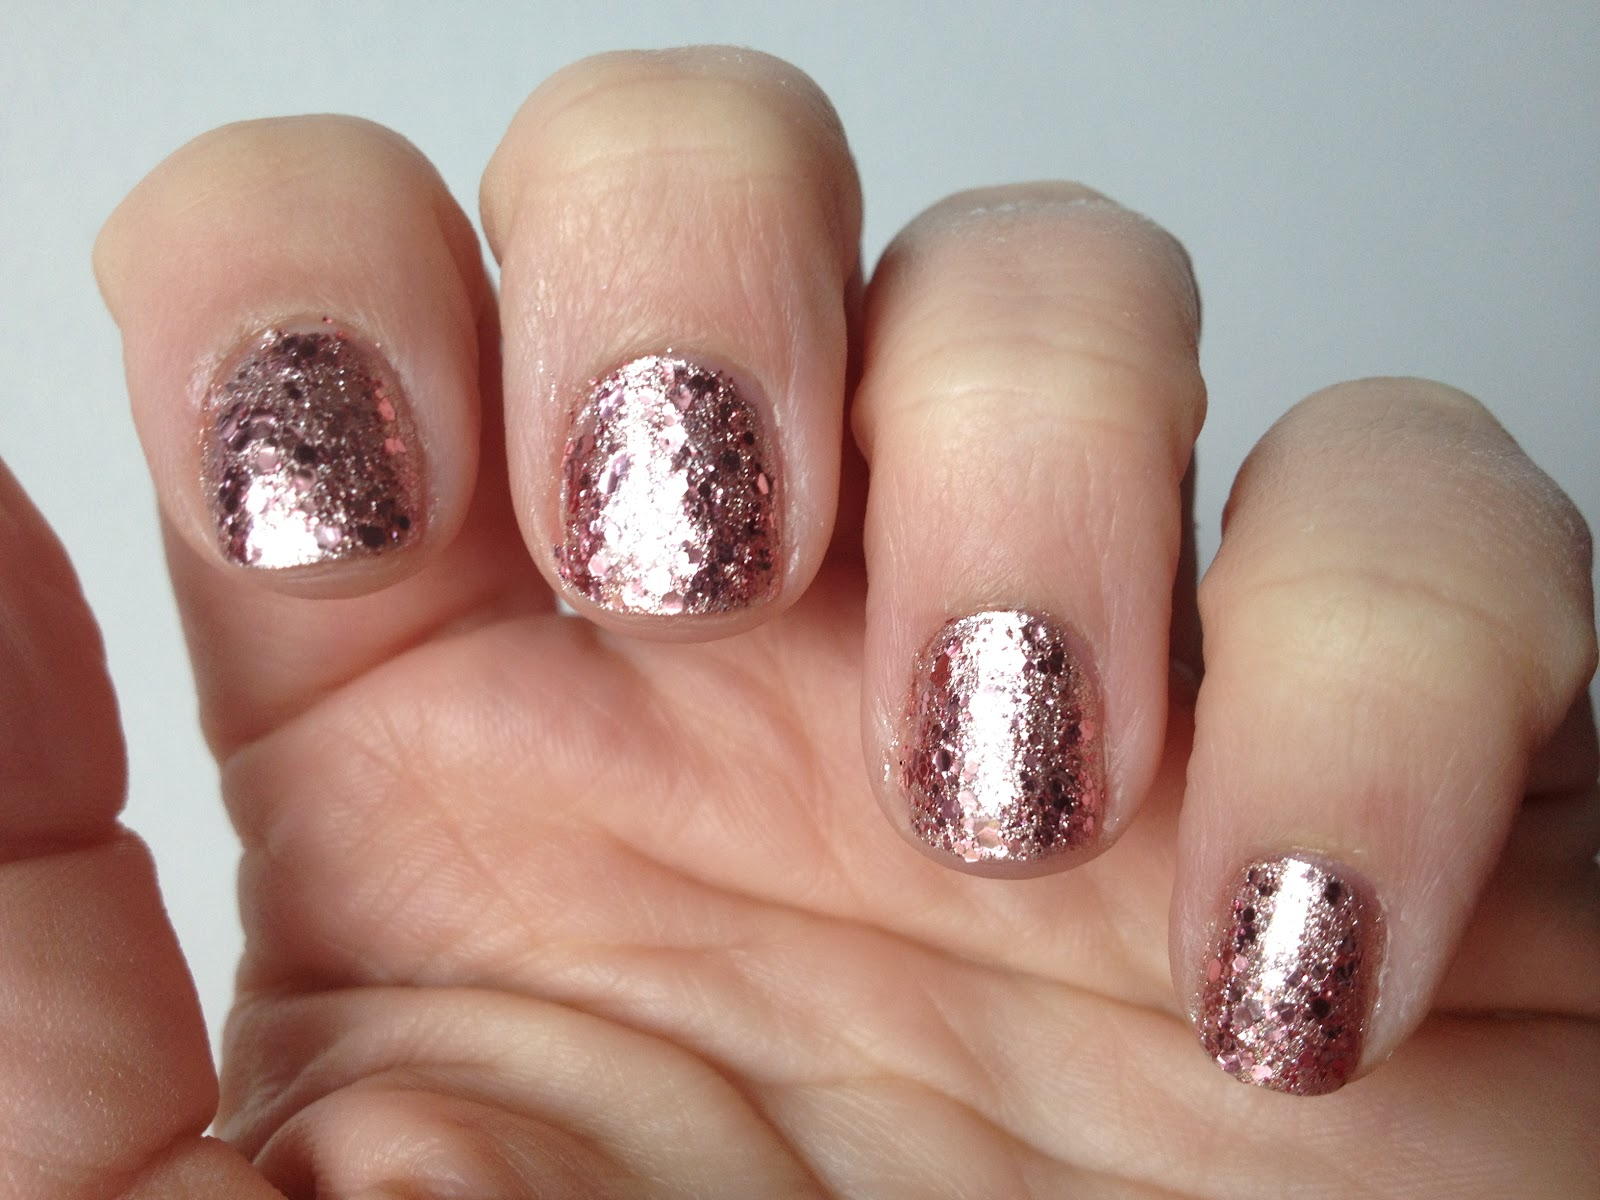 ManicureMonday: Rose Gold Mani - At the Pink of Perfection